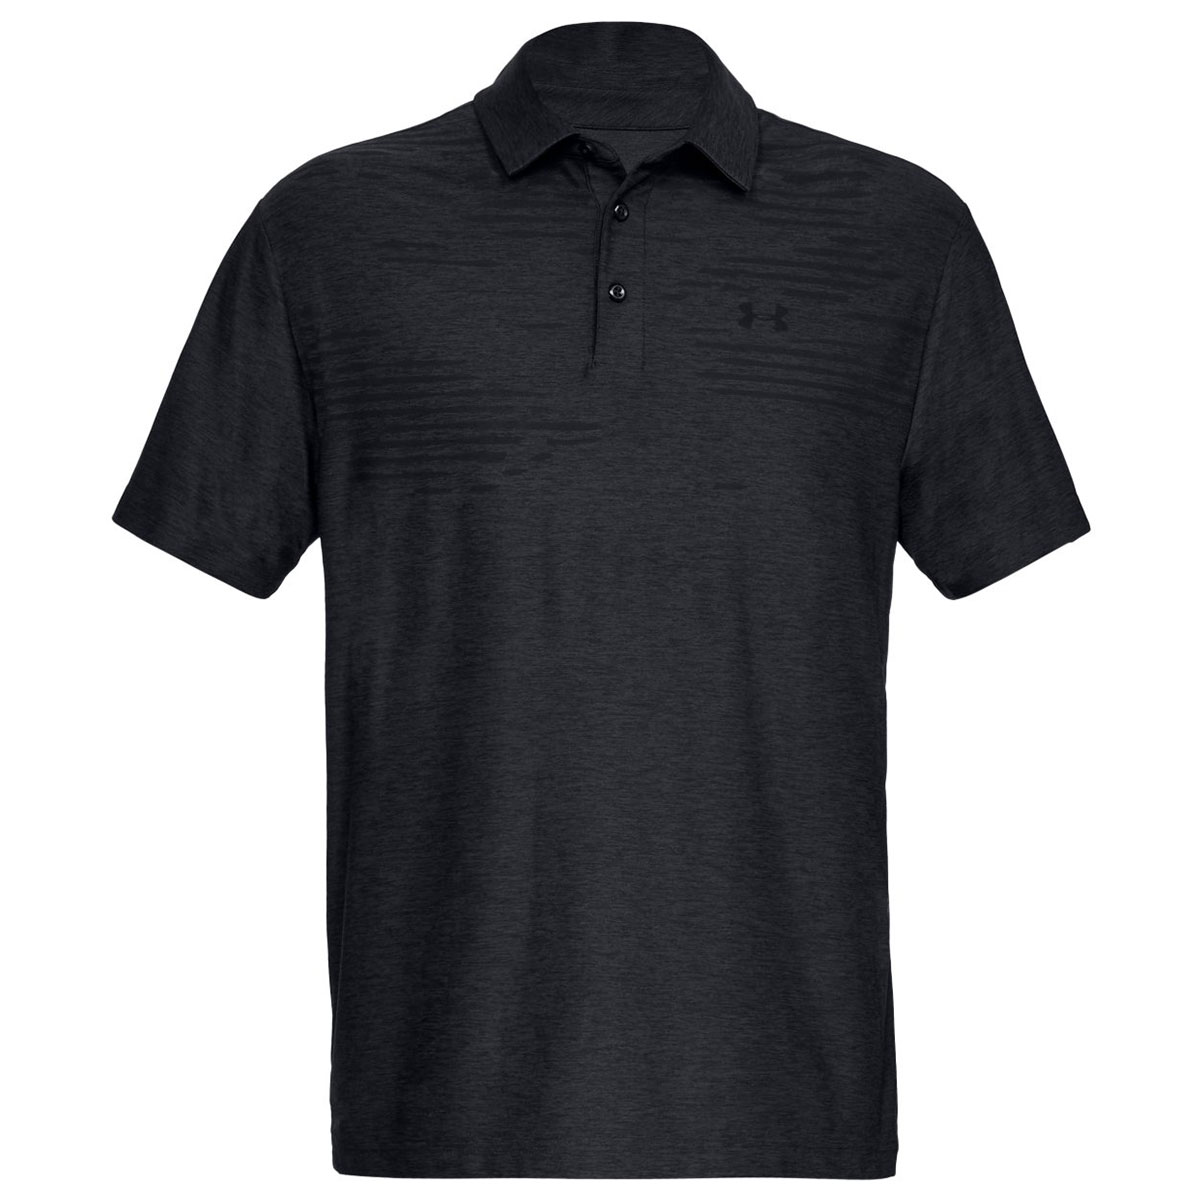 Under-Armour-Mens-UA-Playoff-Performance-Golf-Polo-Shirt-33-OFF-RRP thumbnail 21